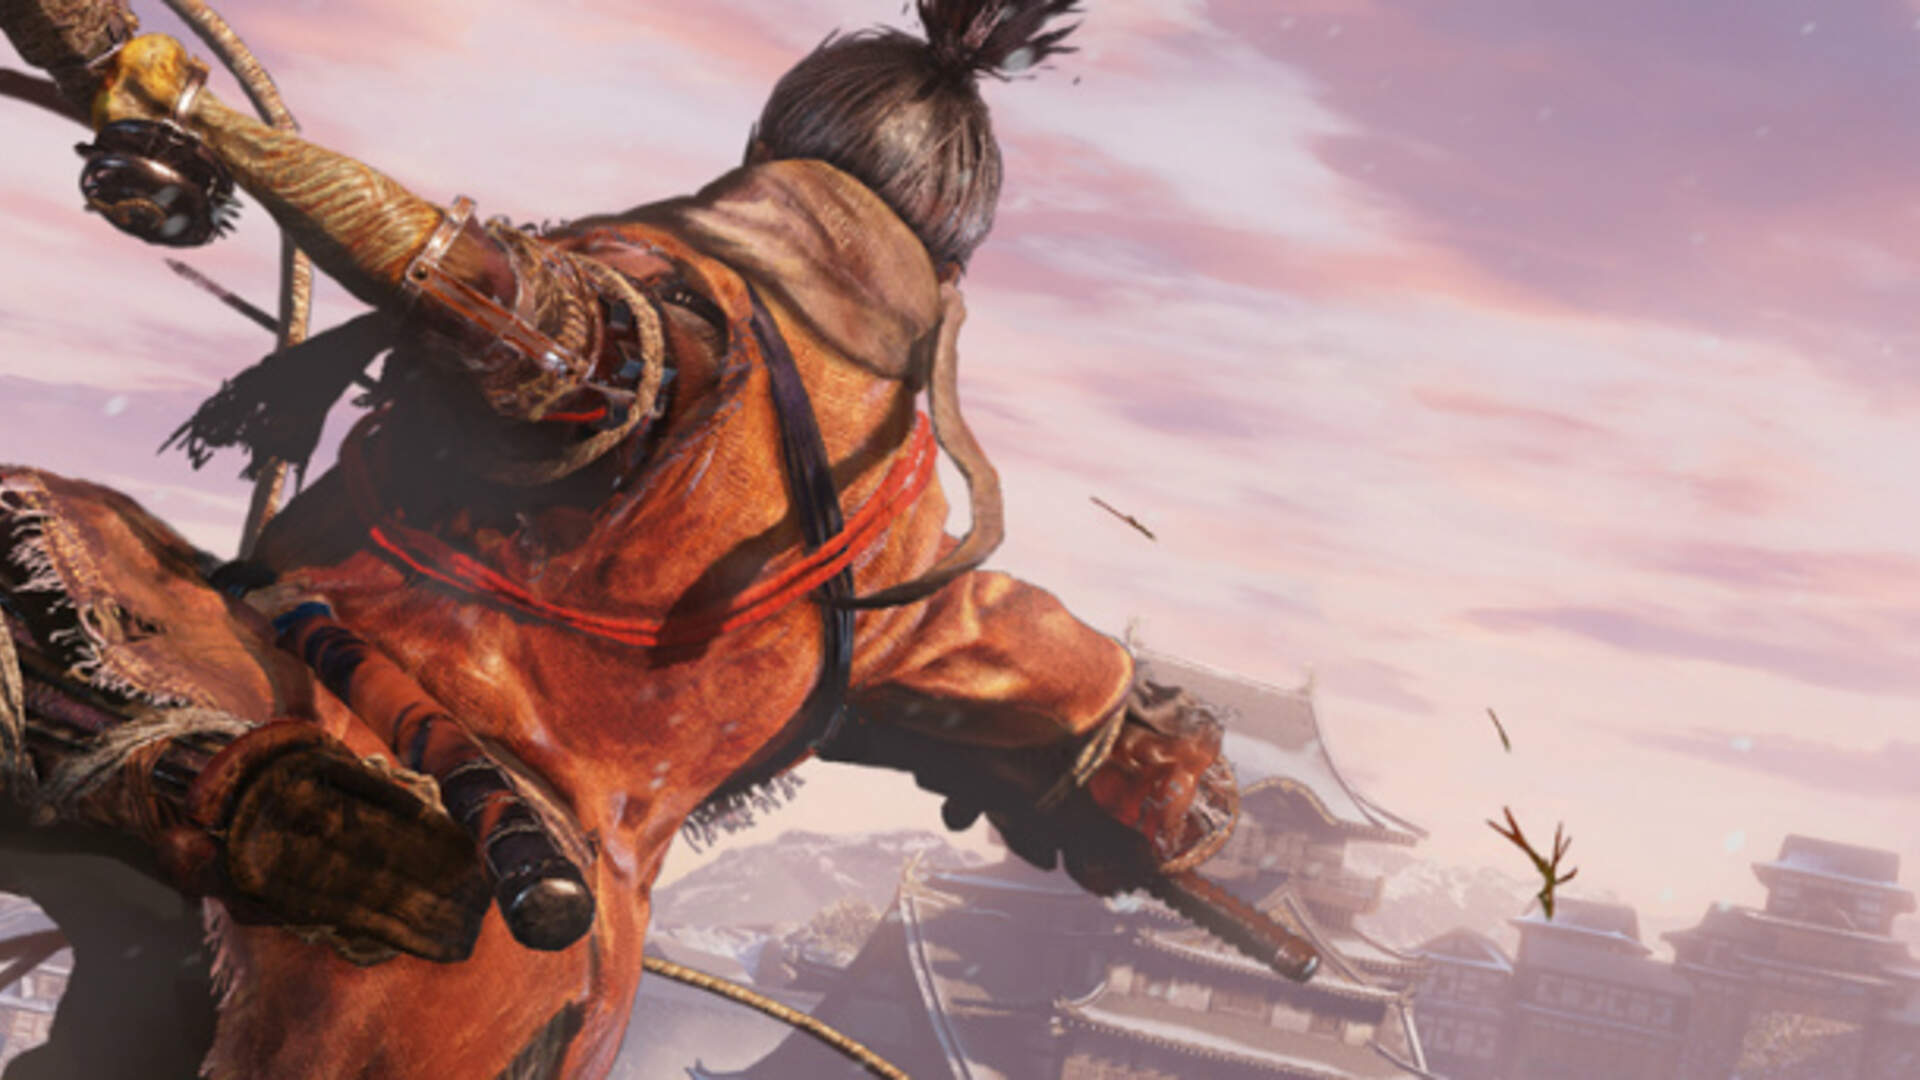 Sekiro: Shadows Die Twice Trades In Bonfires for Grappling Hooks and Traversal is Better For It